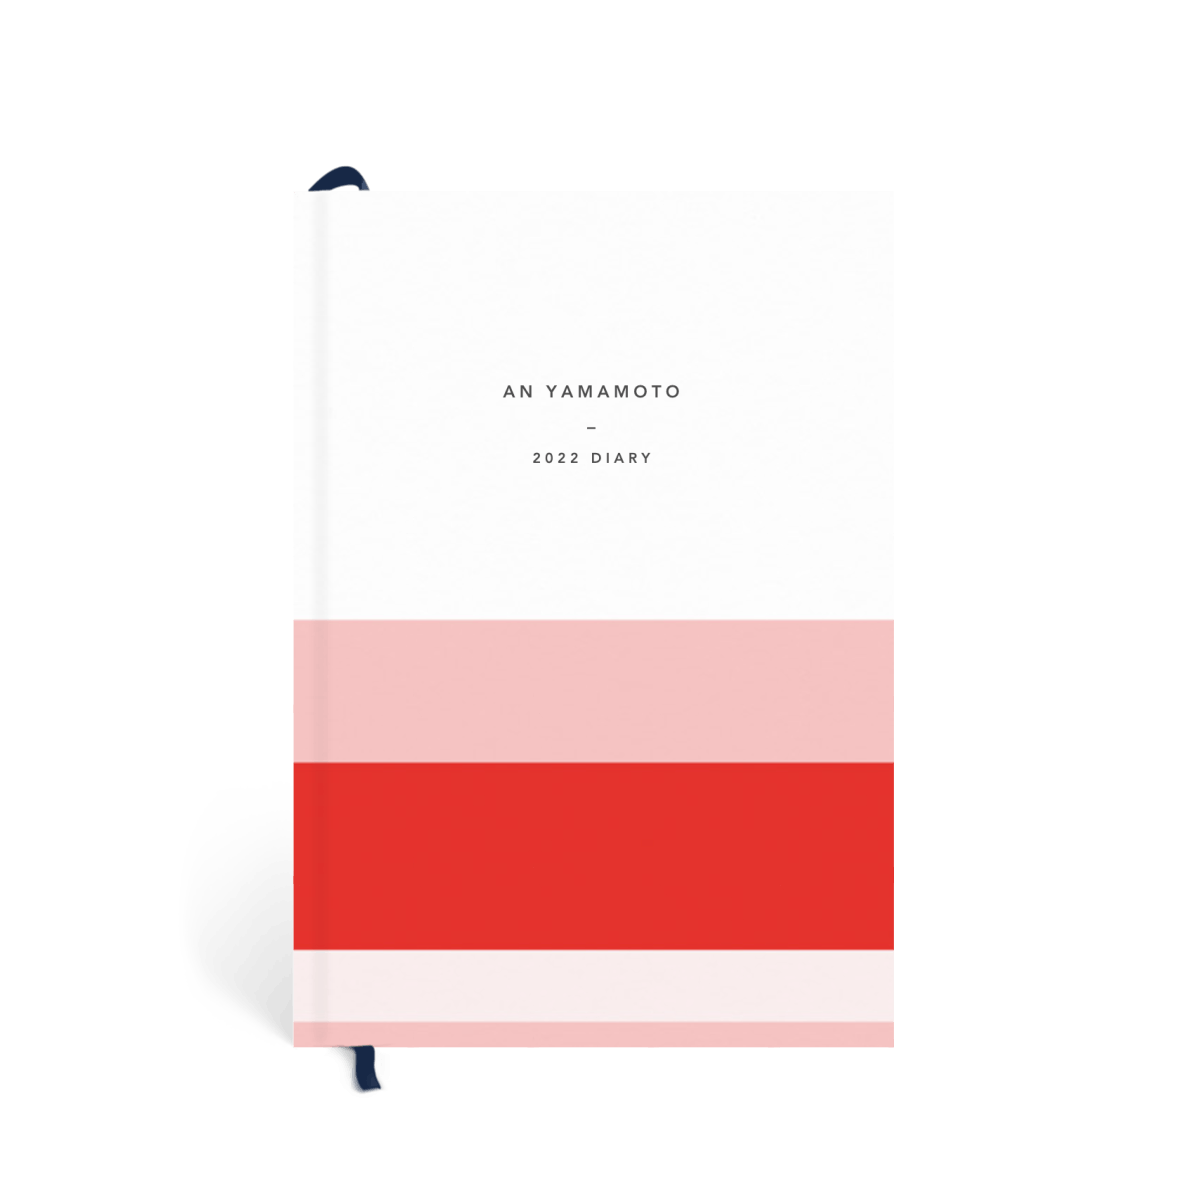 Https%3a%2f%2fwww.papier.com%2fproduct image%2f90139%2f36%2fstriped colourblock pink red 22546 front 1569935947.png?ixlib=rb 1.1